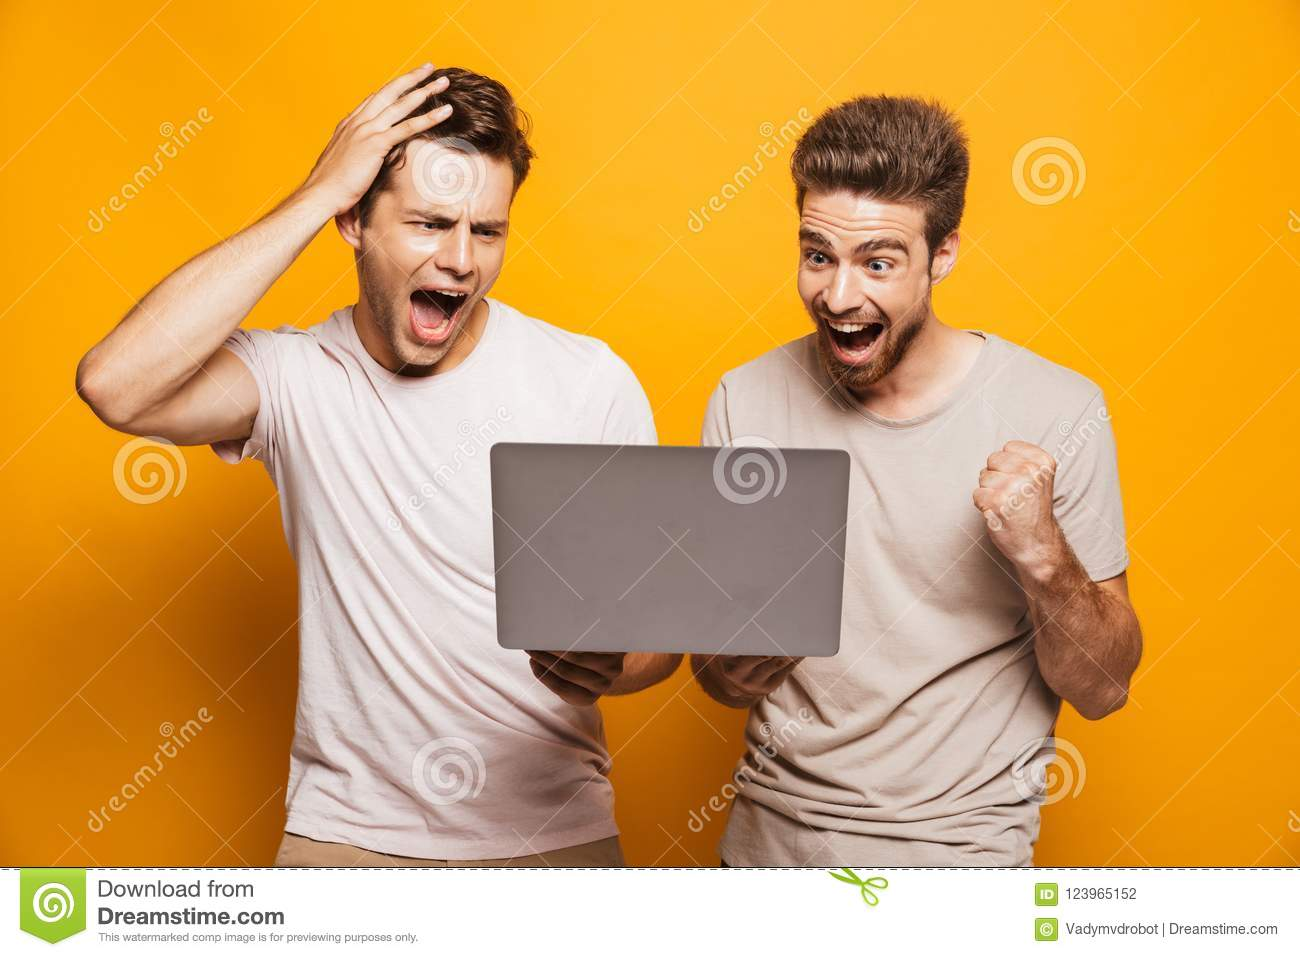 Two excited men